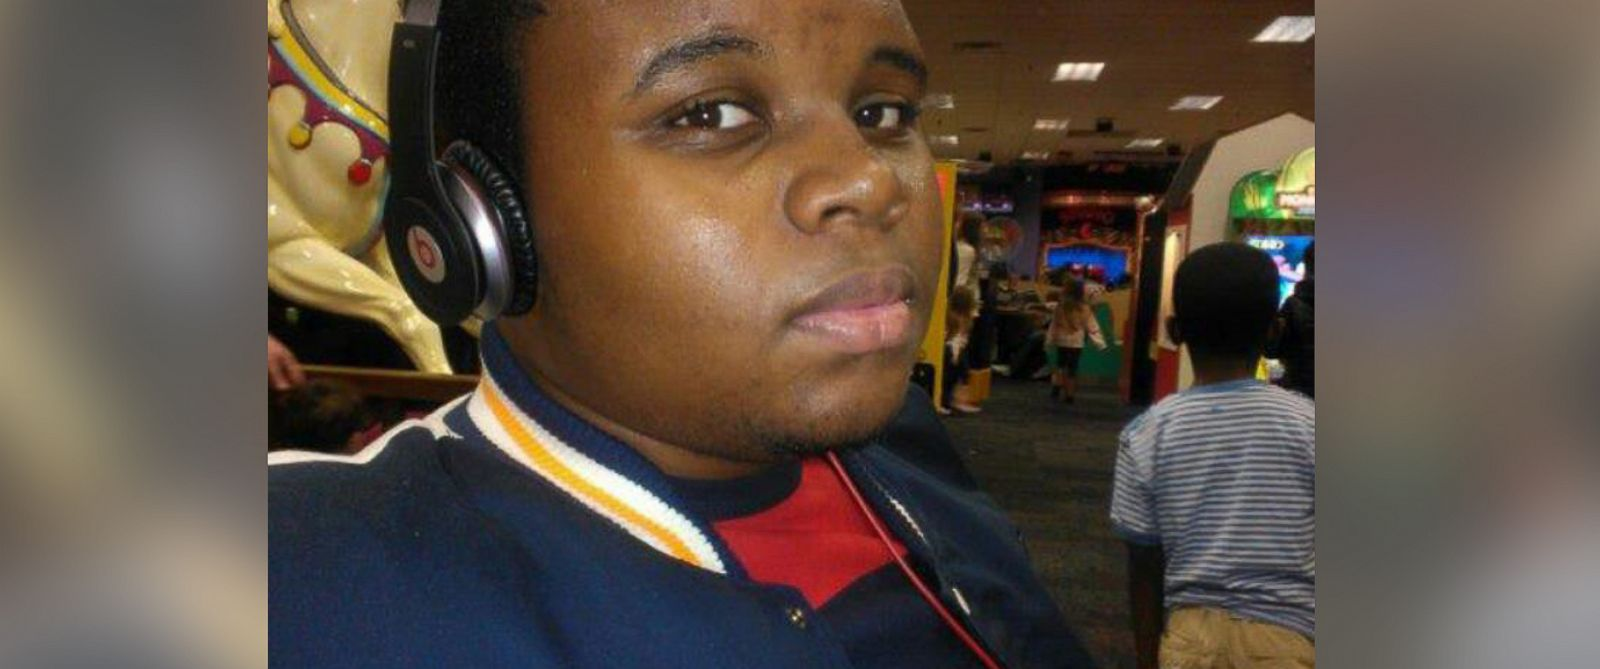 the shooting of michael brown essay America witnessed police shootings of young, black men recently this essay explores michael brown's shooting death by a white police officer in ferguson.